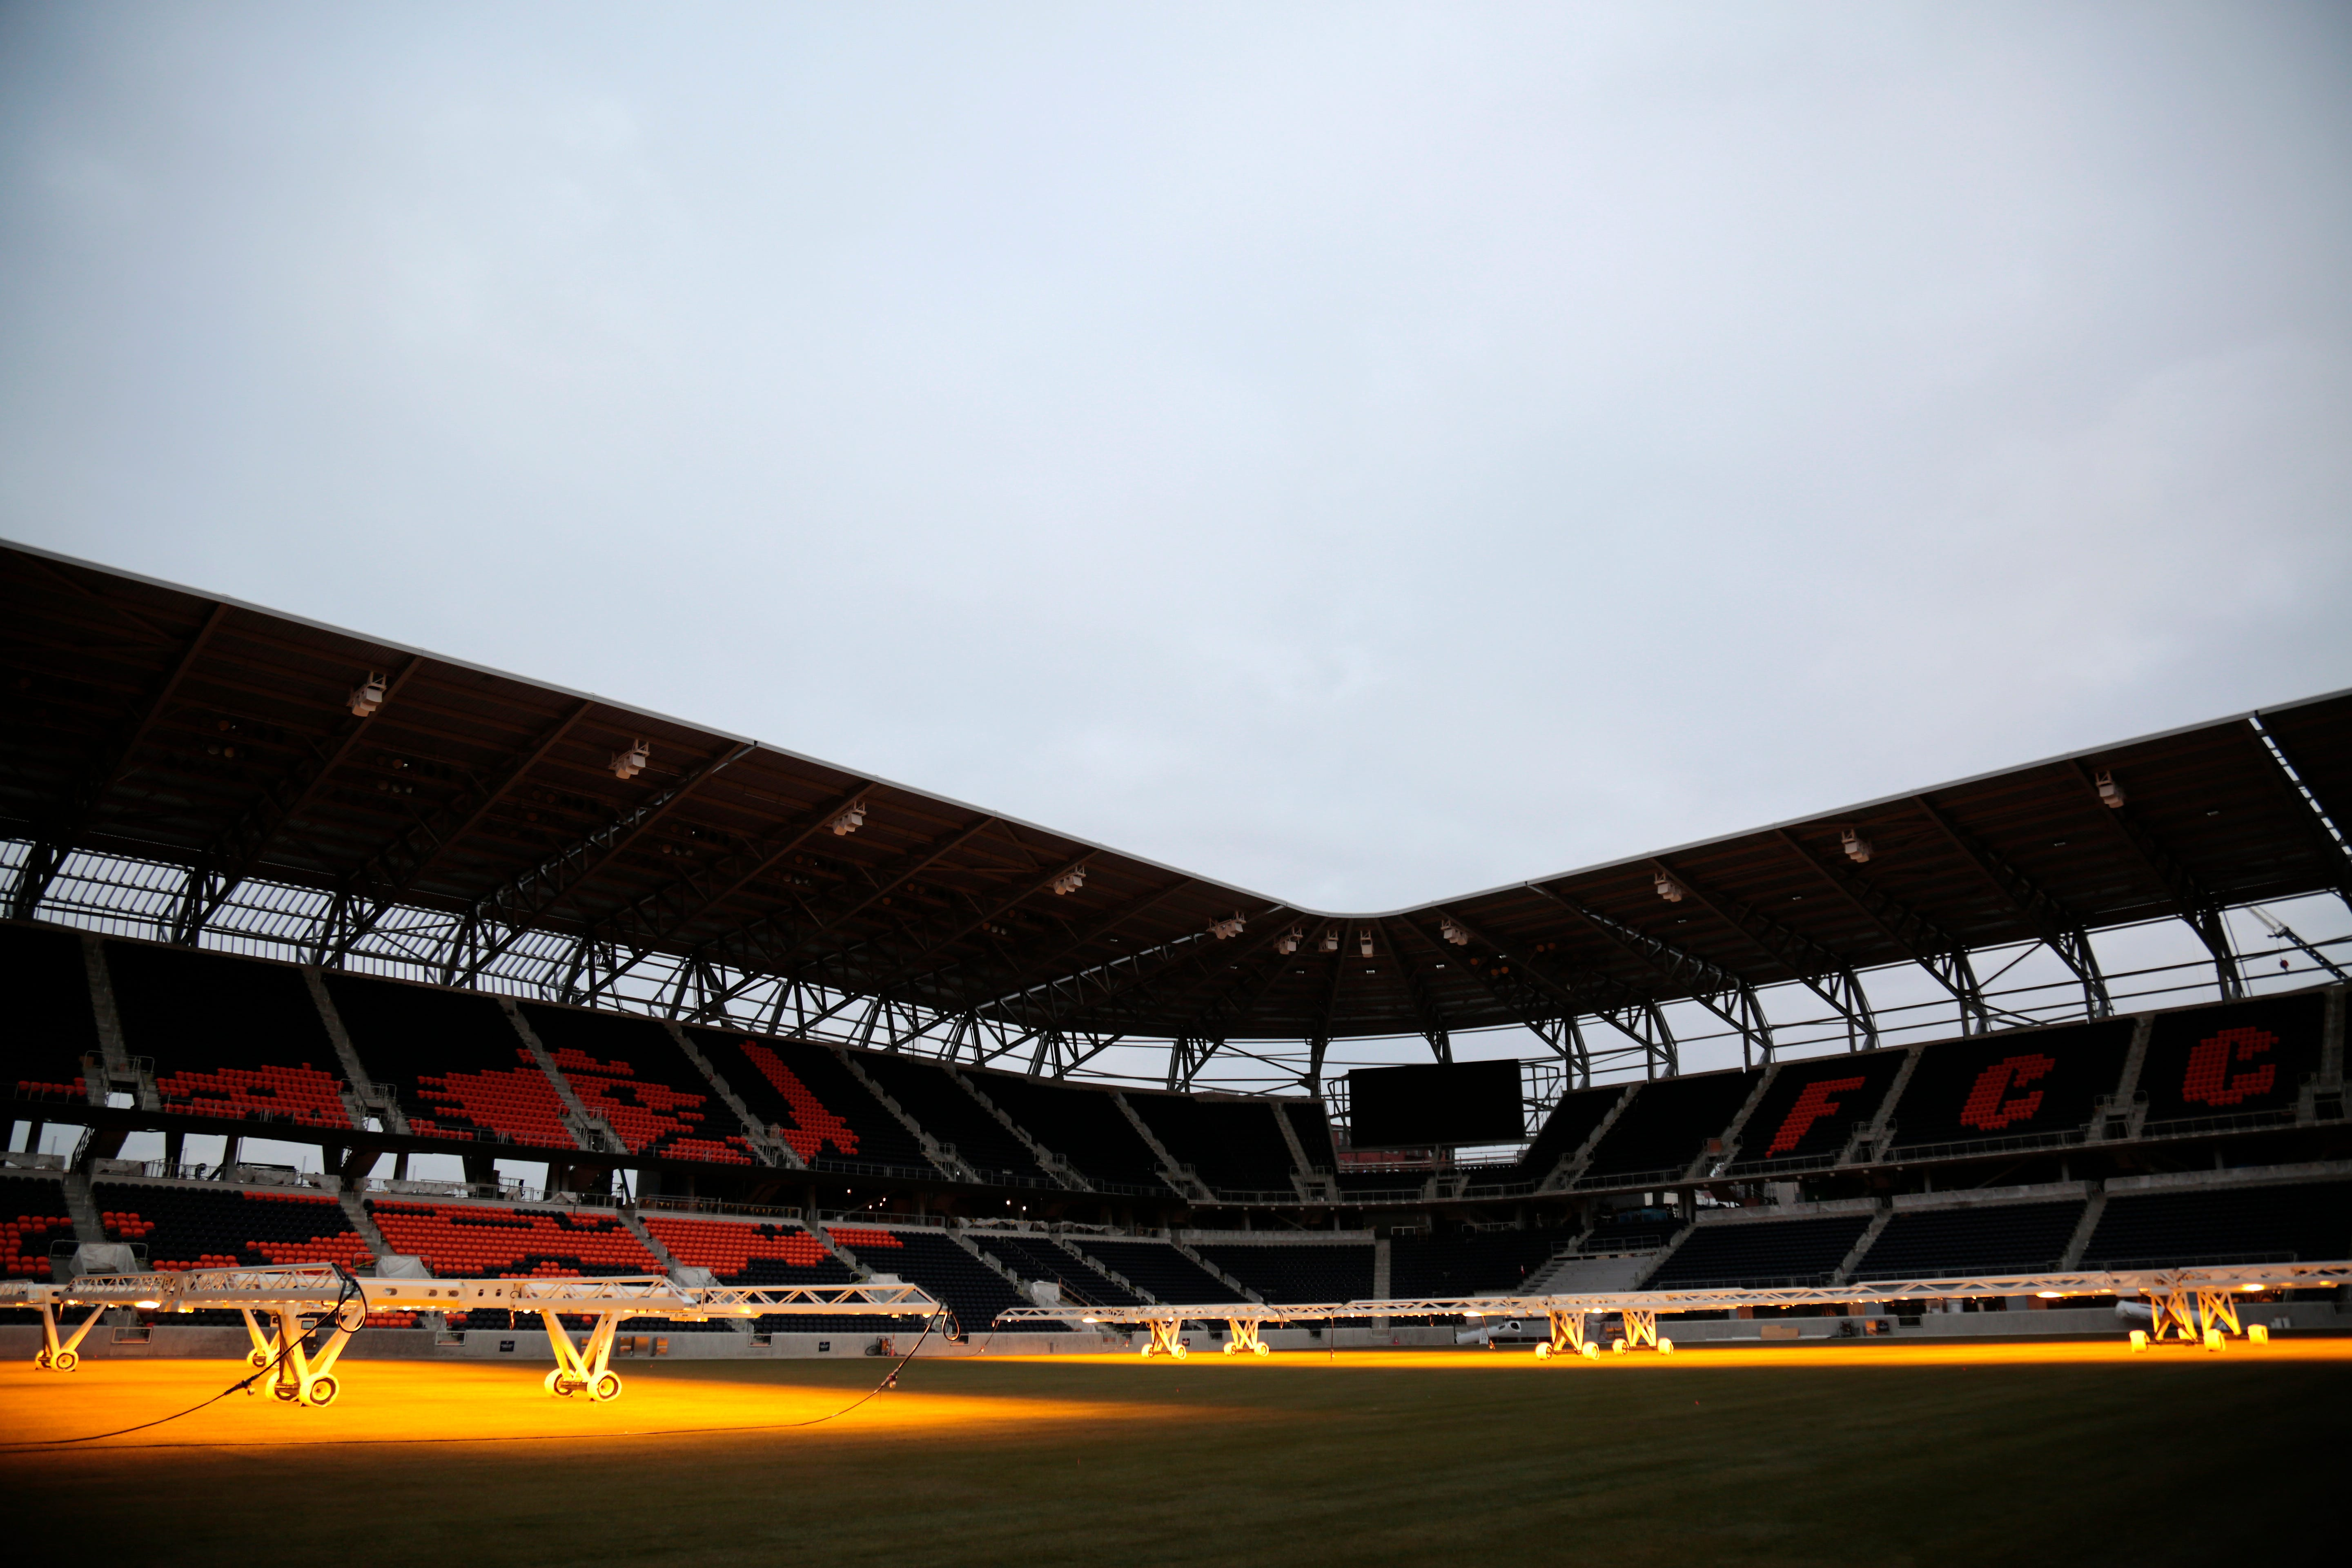 Players unions for NFL, NBA, MLB among those supporting MLS players as lockout looms